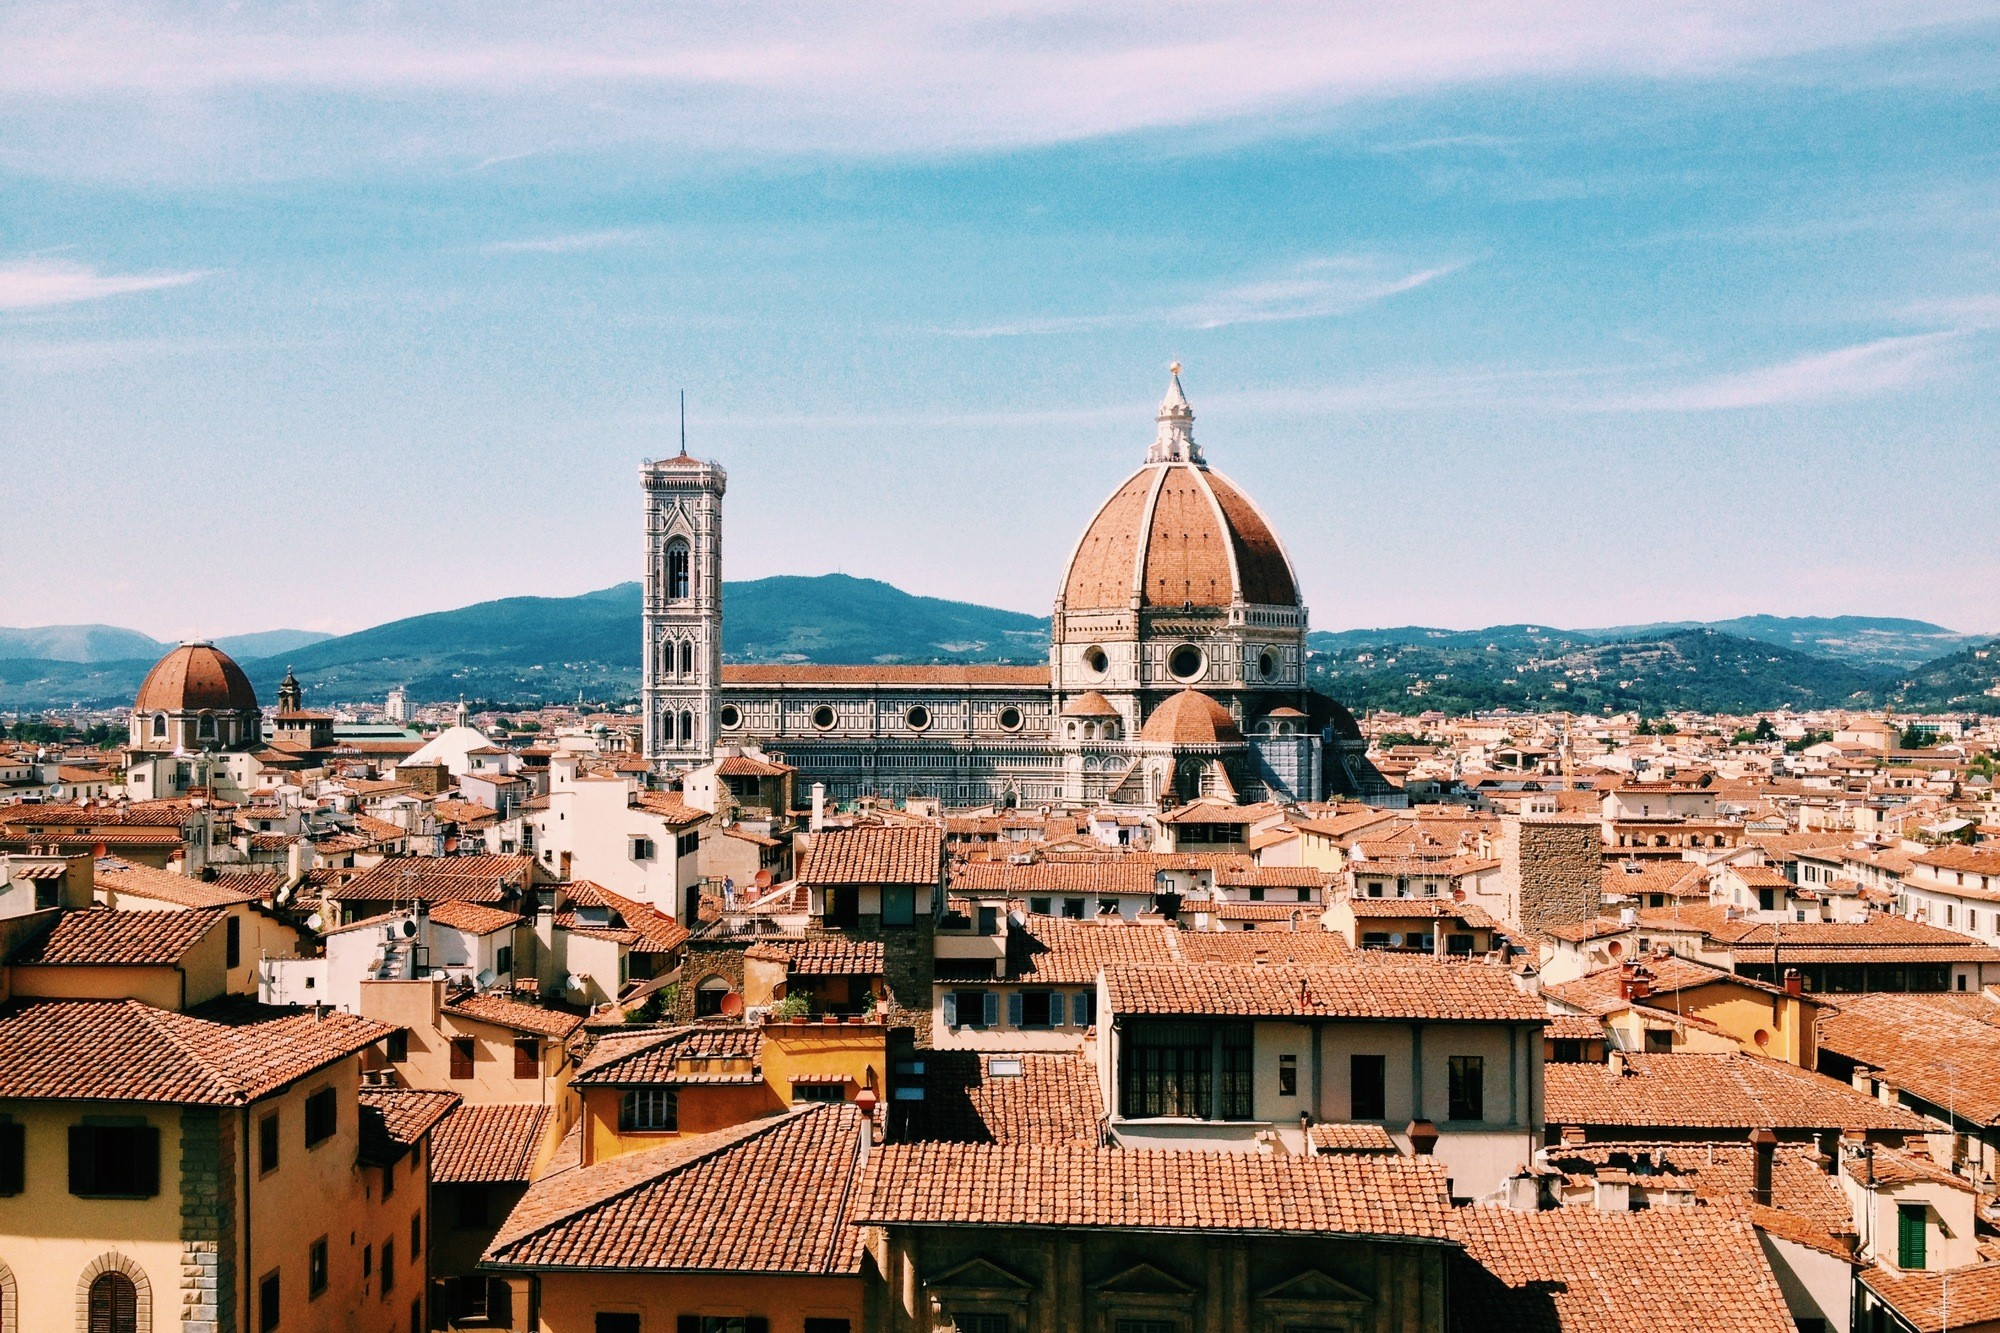 How Did Filippo Brunelleschi Construct the World's Largest Masonry Dome?, Santa Maria del Fiore, Florence. Image © James Taylor-Foster